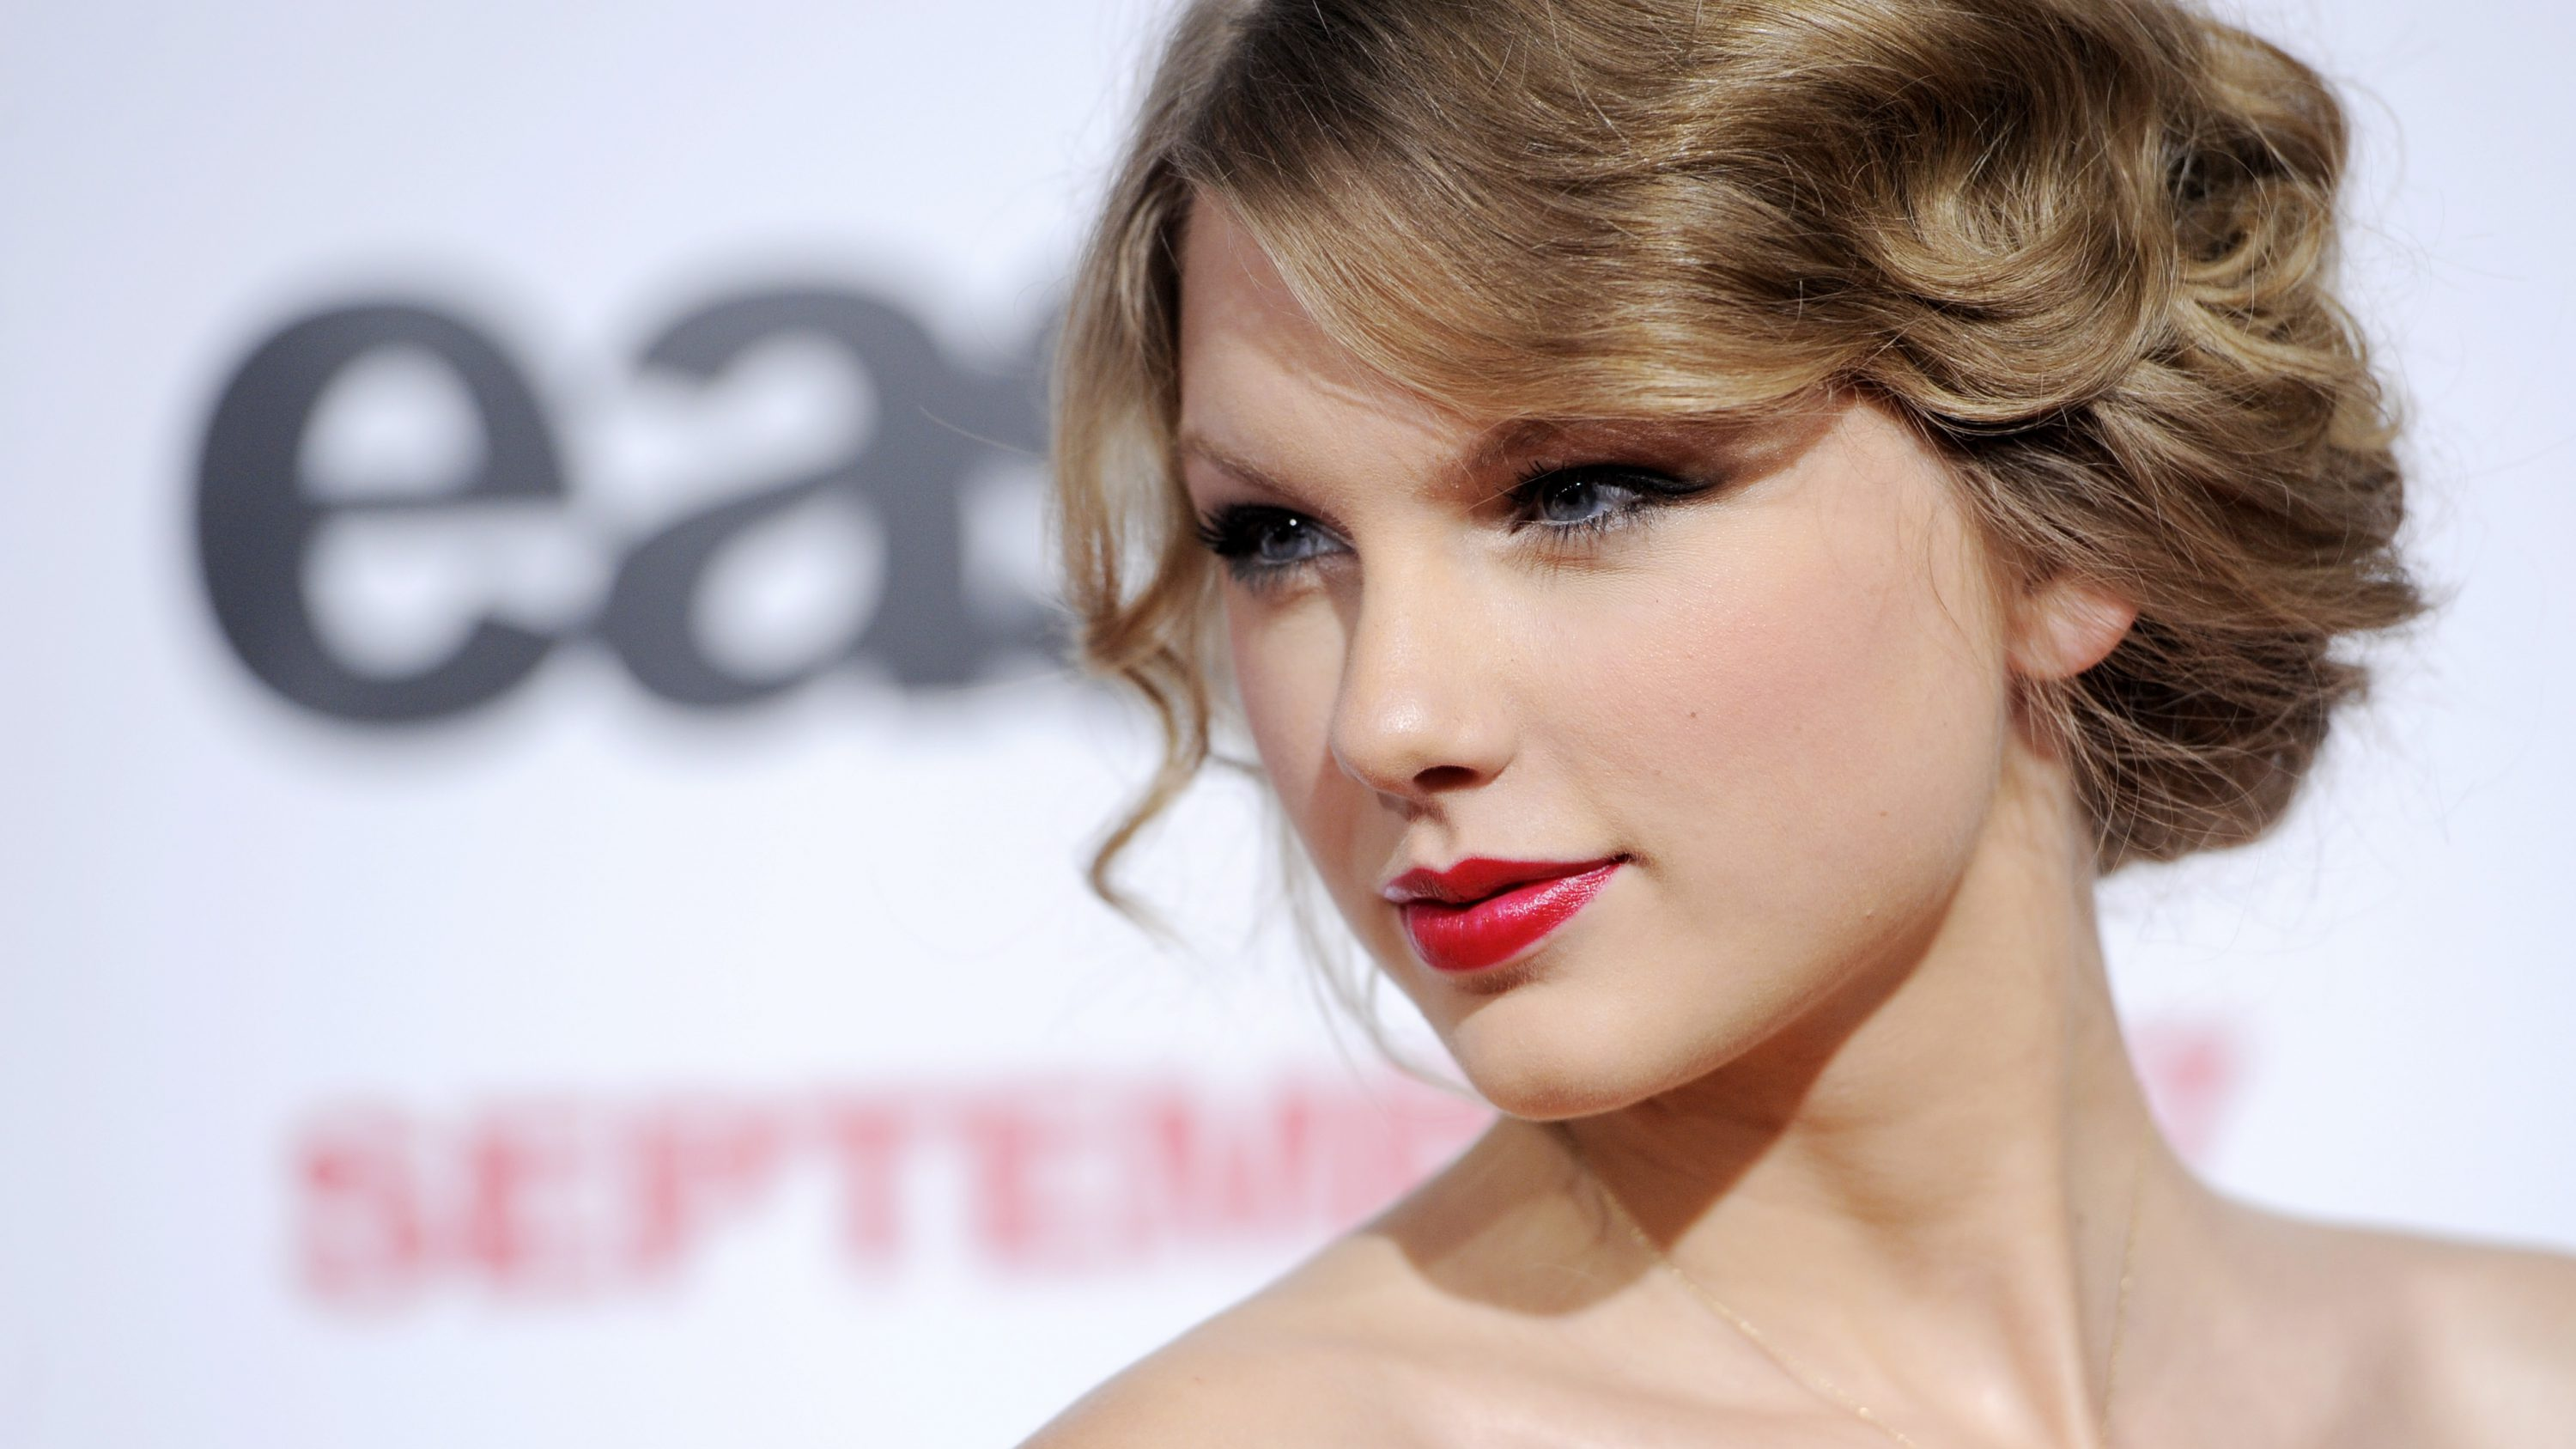 """Singer Taylor Swift poses at the premiere of the film """"Easy A"""" in Los Angeles, Monday, Sept. 13, 2010."""